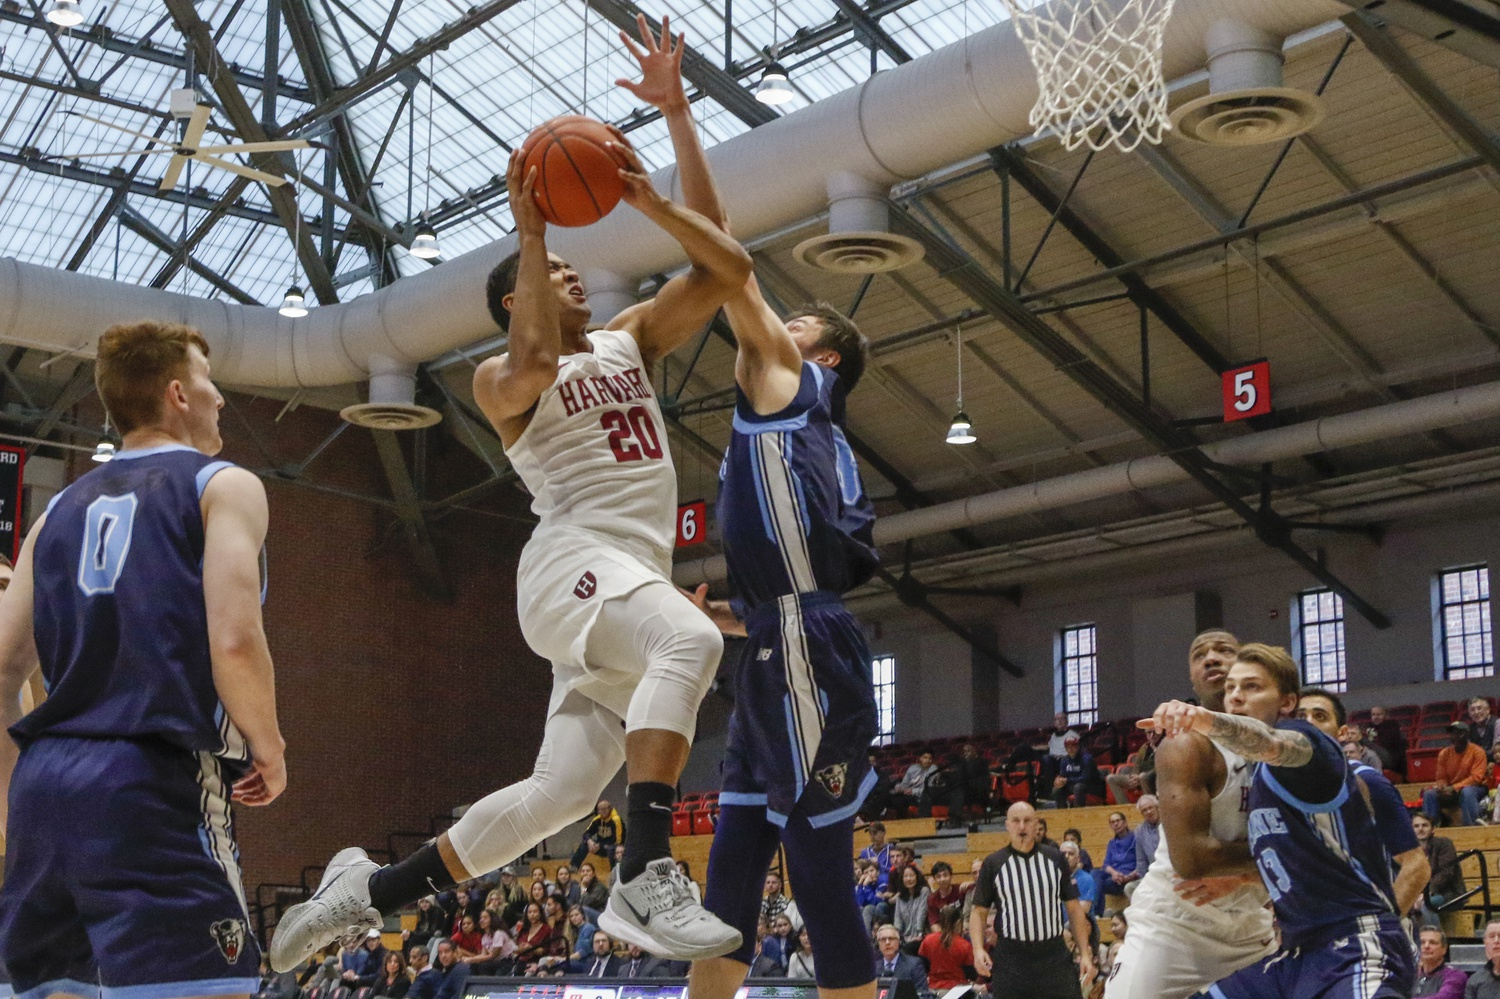 With the bevy of injuries facing the Crimson early in the season, senior Justin Bassey has assumed a more significant role on offense.